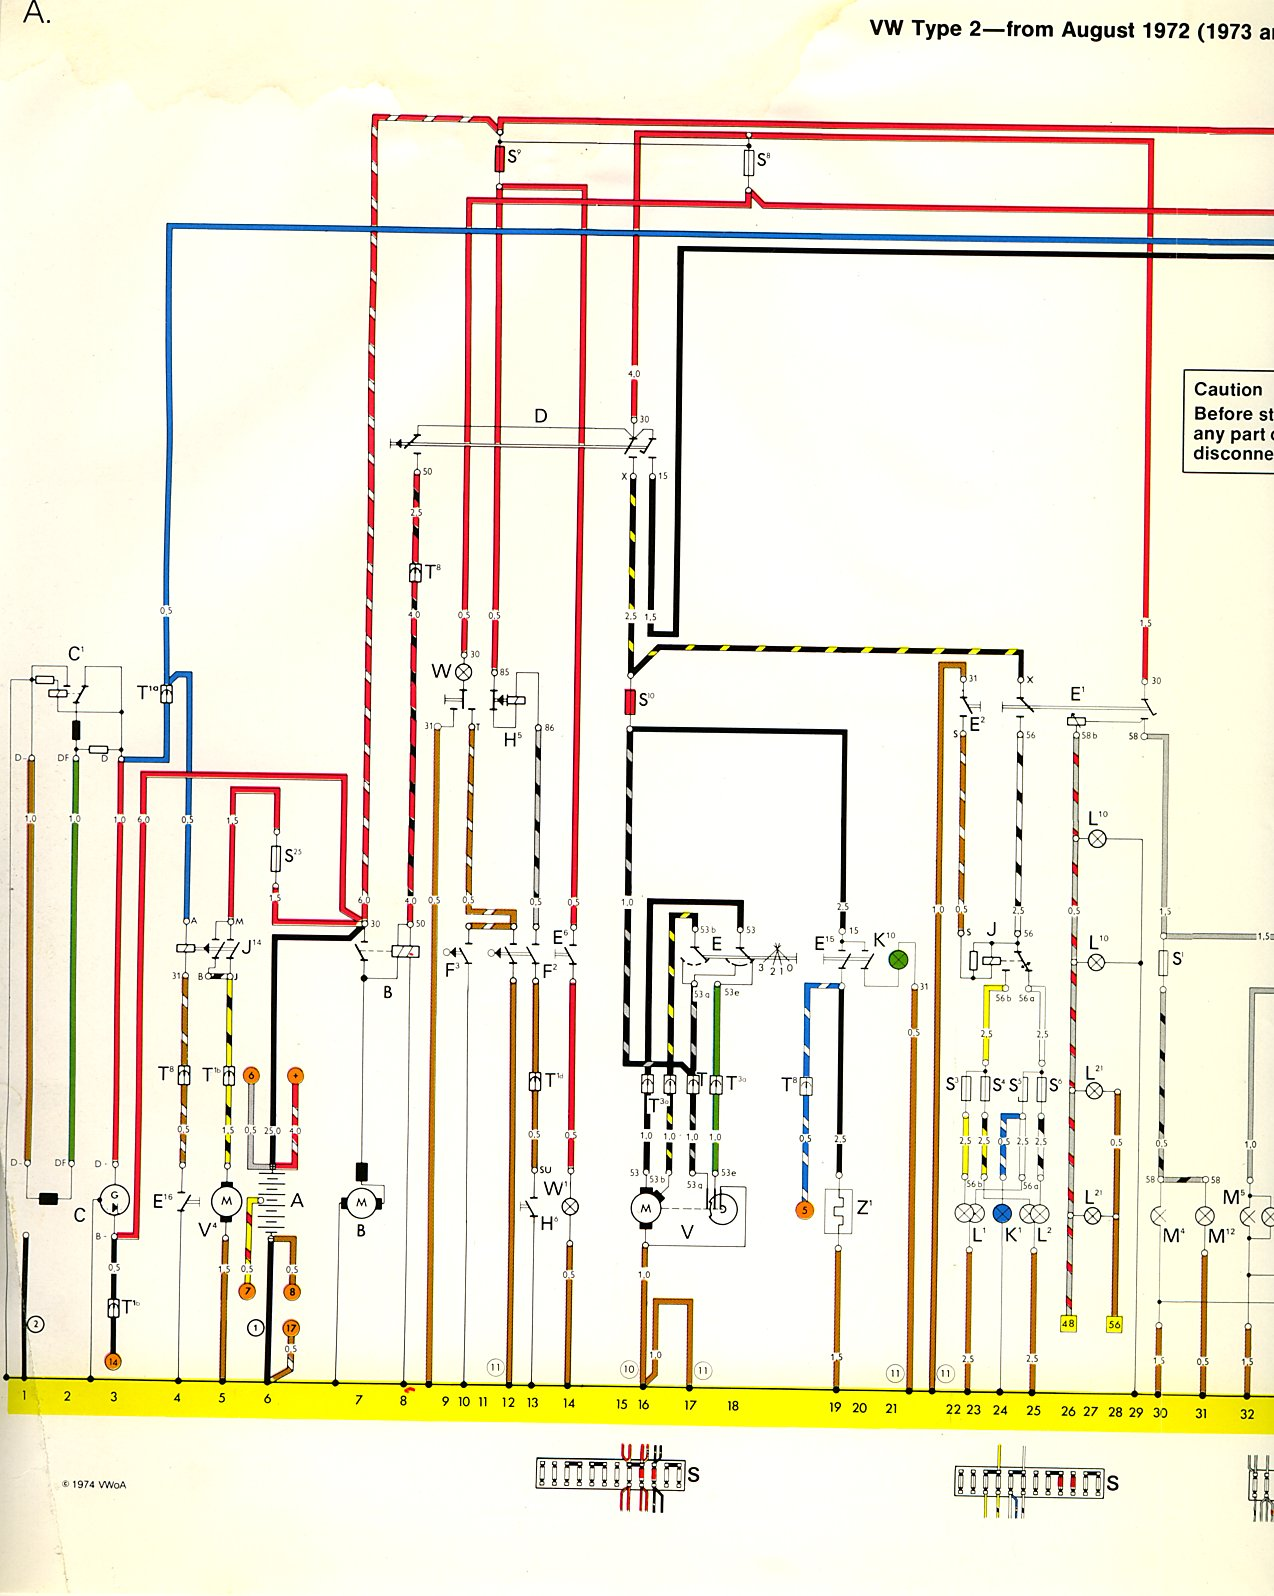 Empi Wiring Diagram Will Be A Thing Vw Rail Alternator Image May Have Been Reduced In Size Click To View Buggy Diagrams